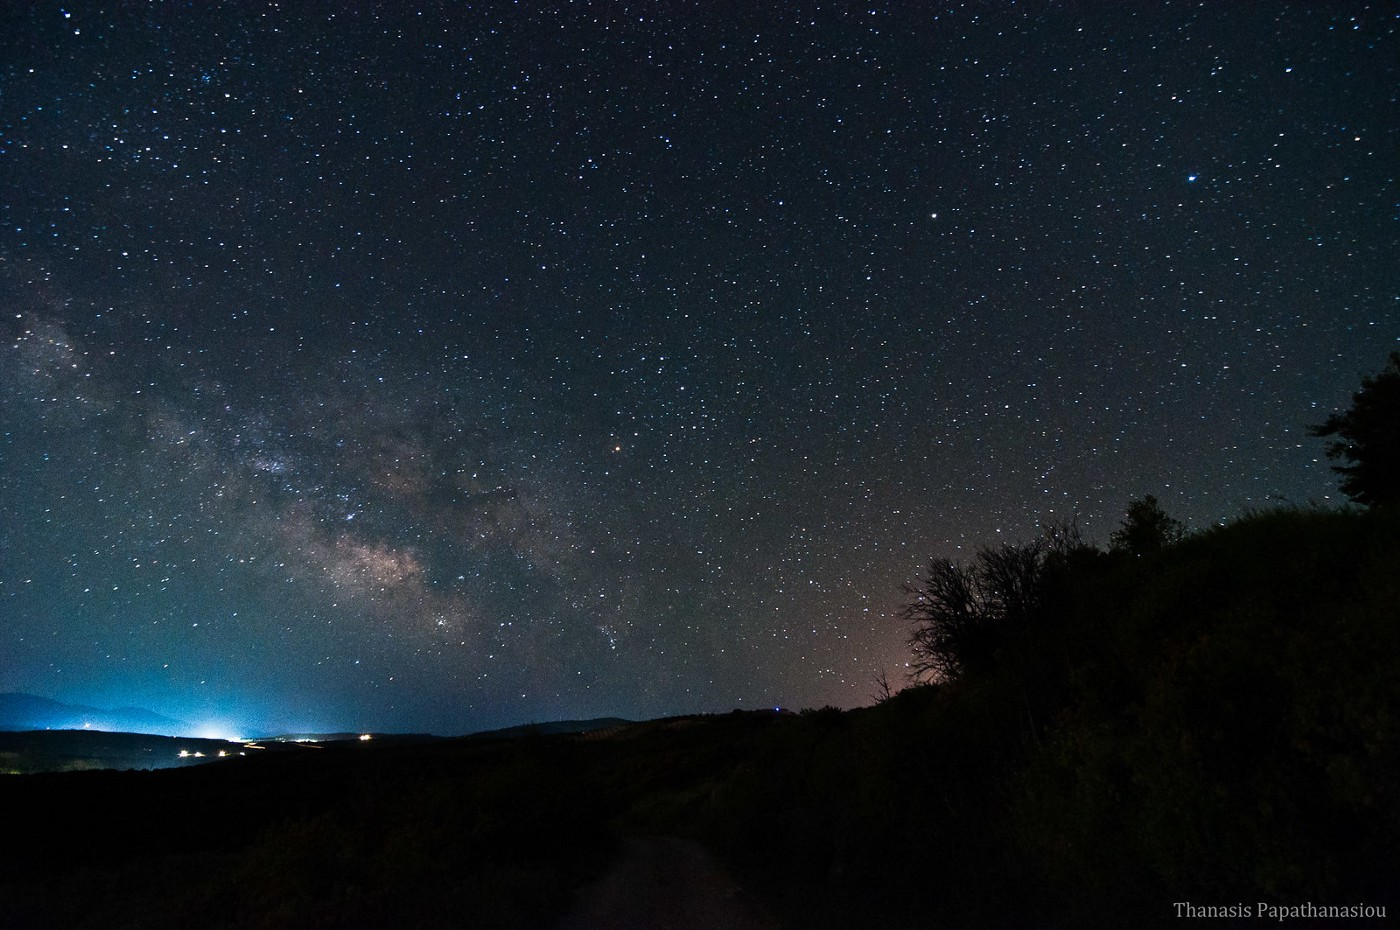 Photo of Milky Way over Heraklion by Thanasis Papathanasiou (CC BY-NC-ND 2.0) on Flickr